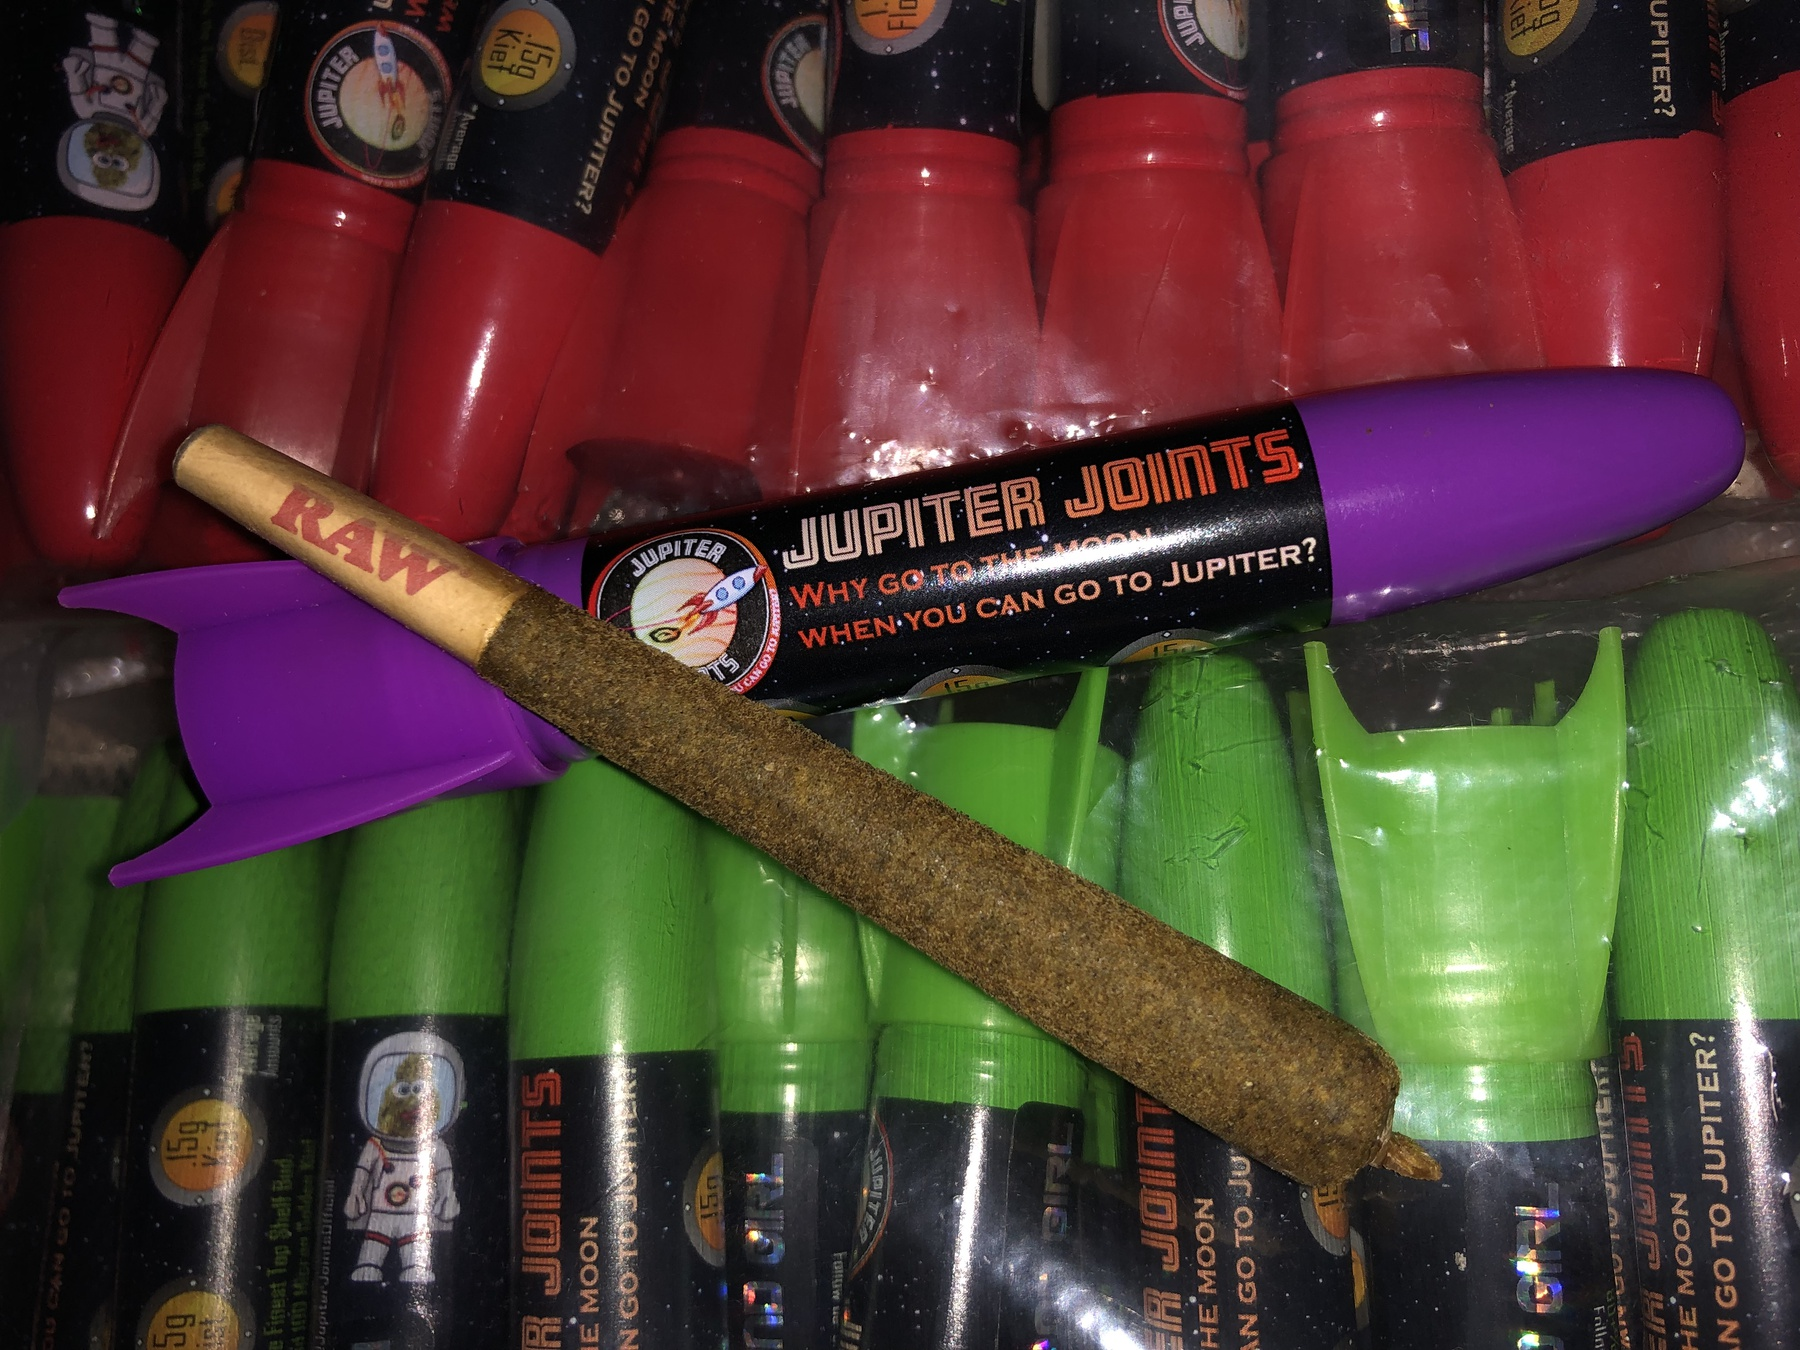 Jupiter Joint Watermelon Kush Indica Rocket Distillate/Kief Pre-Rolled Joint Product image